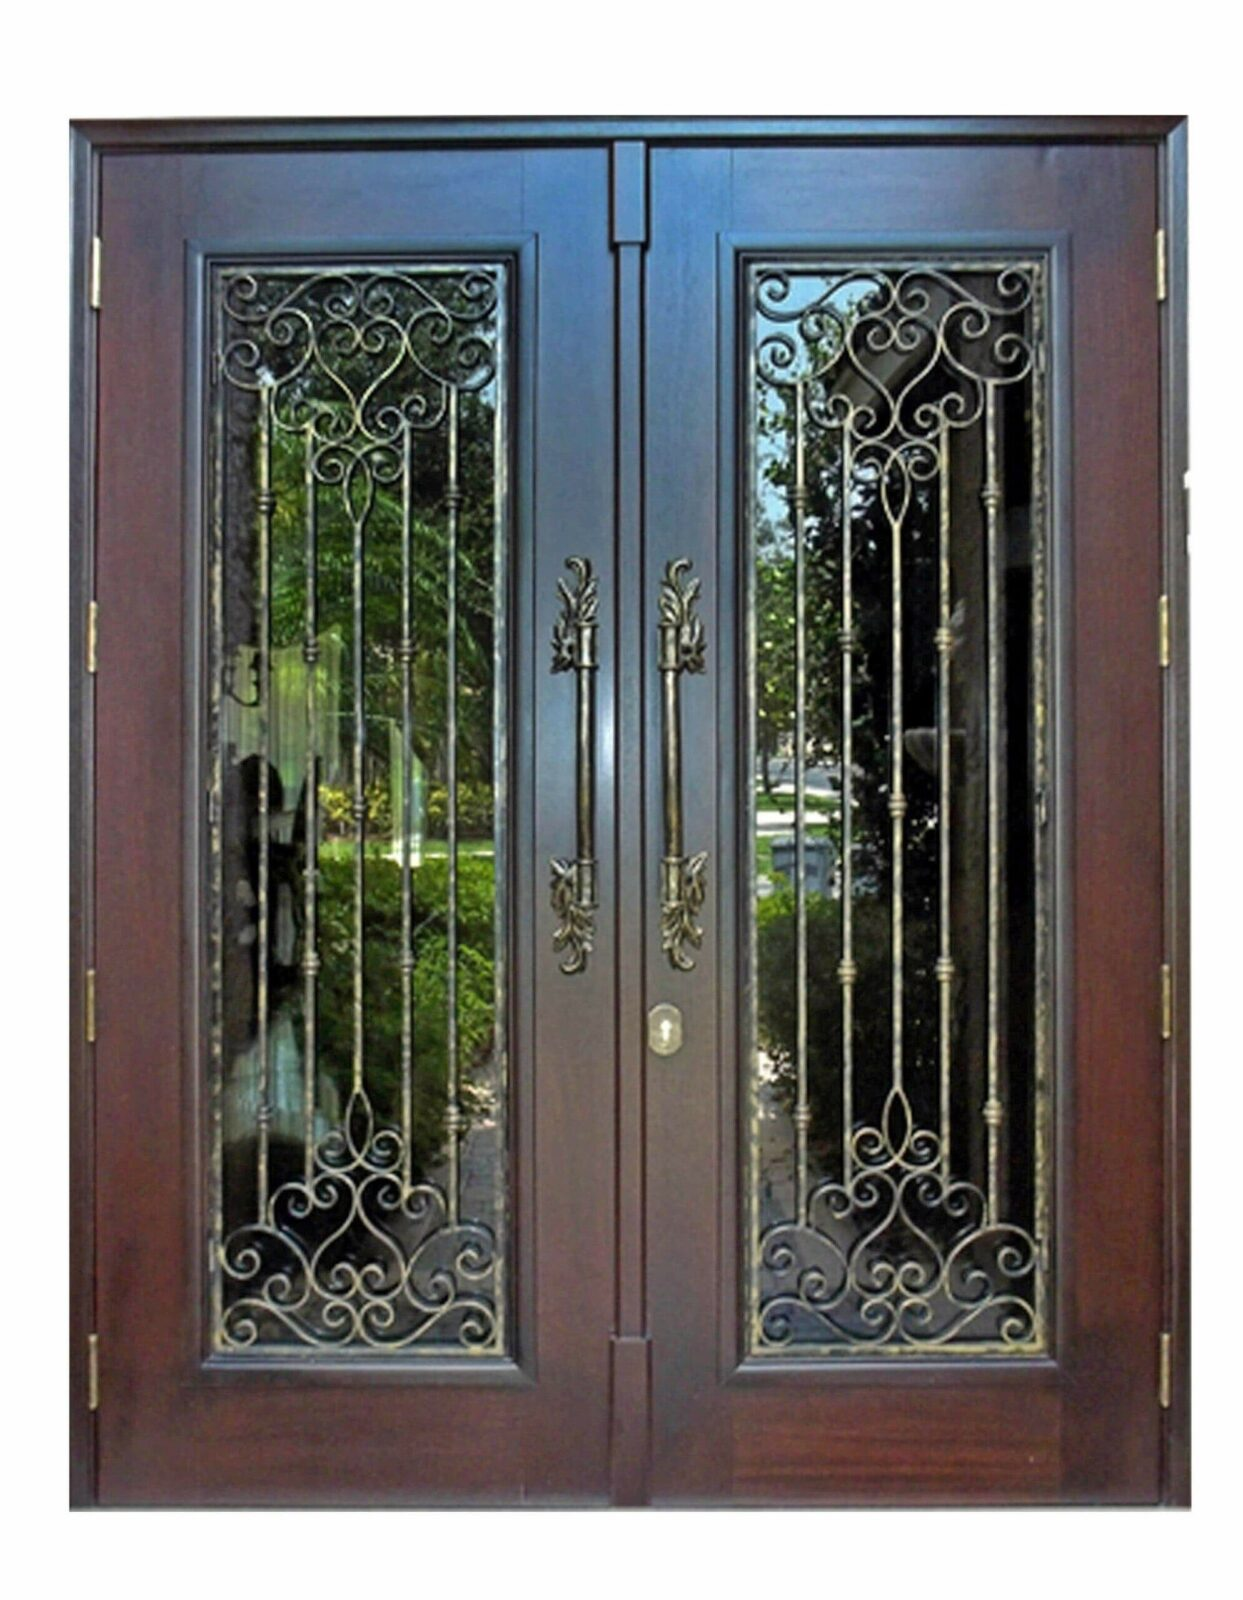 Golden Gate Mahogany Entrance Doors